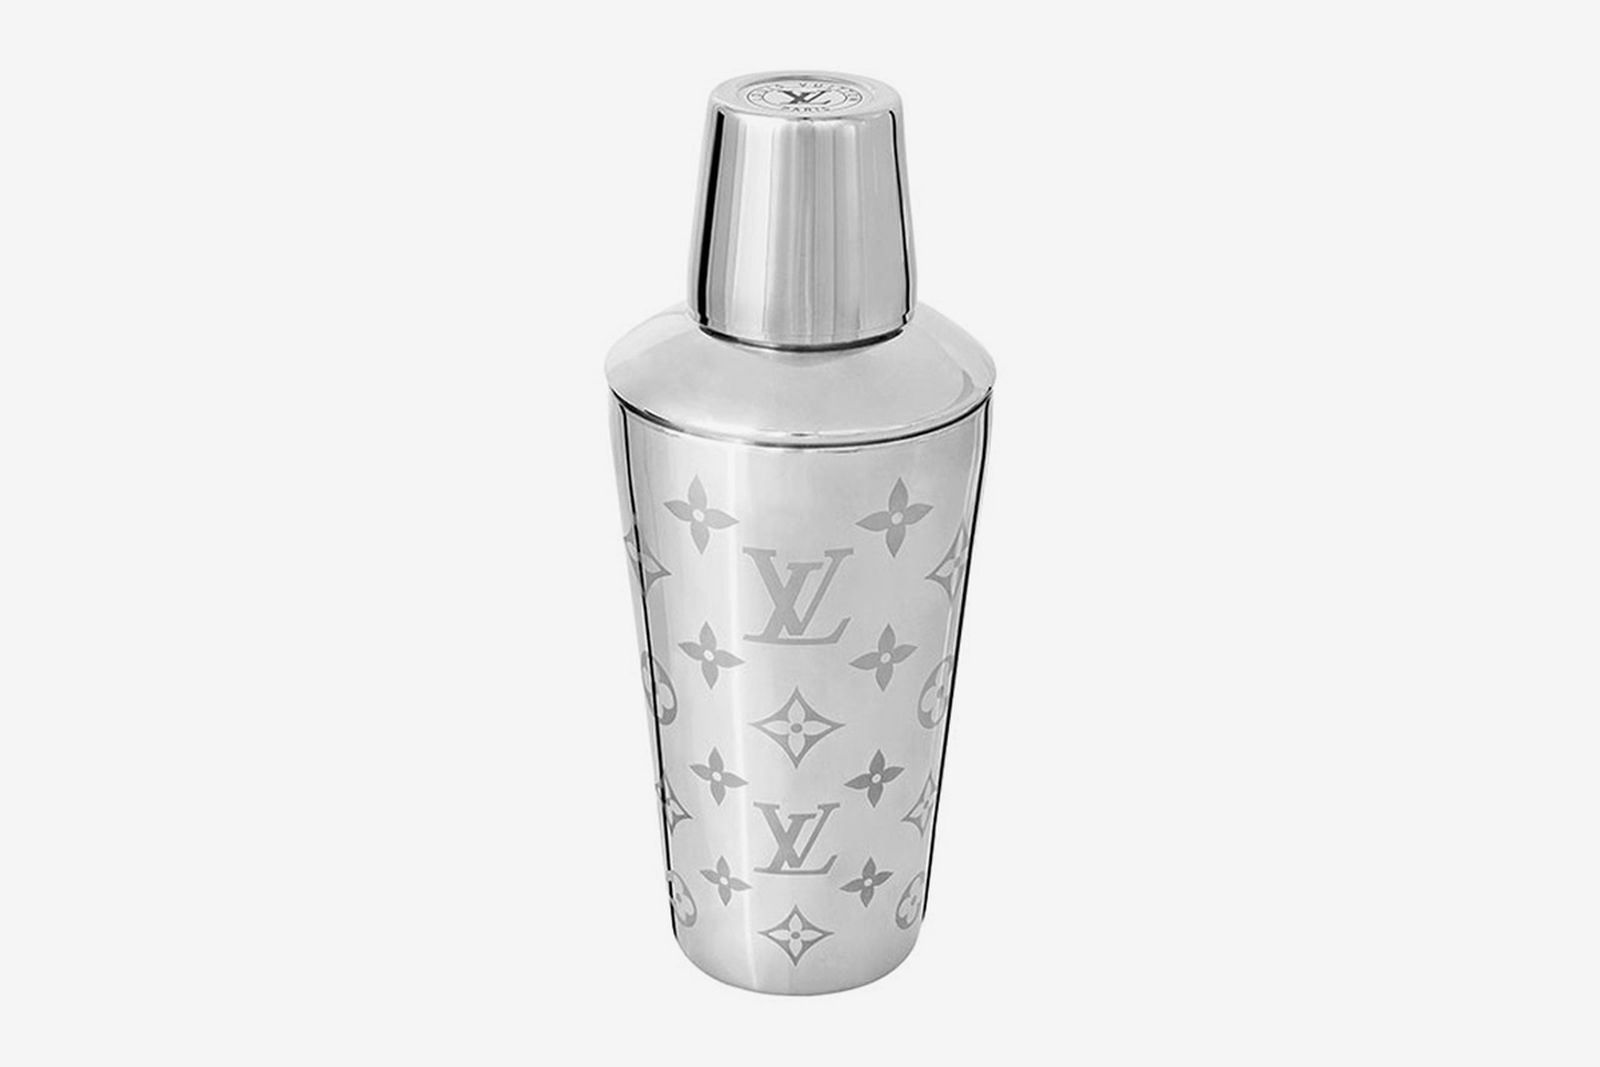 Louis Vuitton 2020 Home Goods